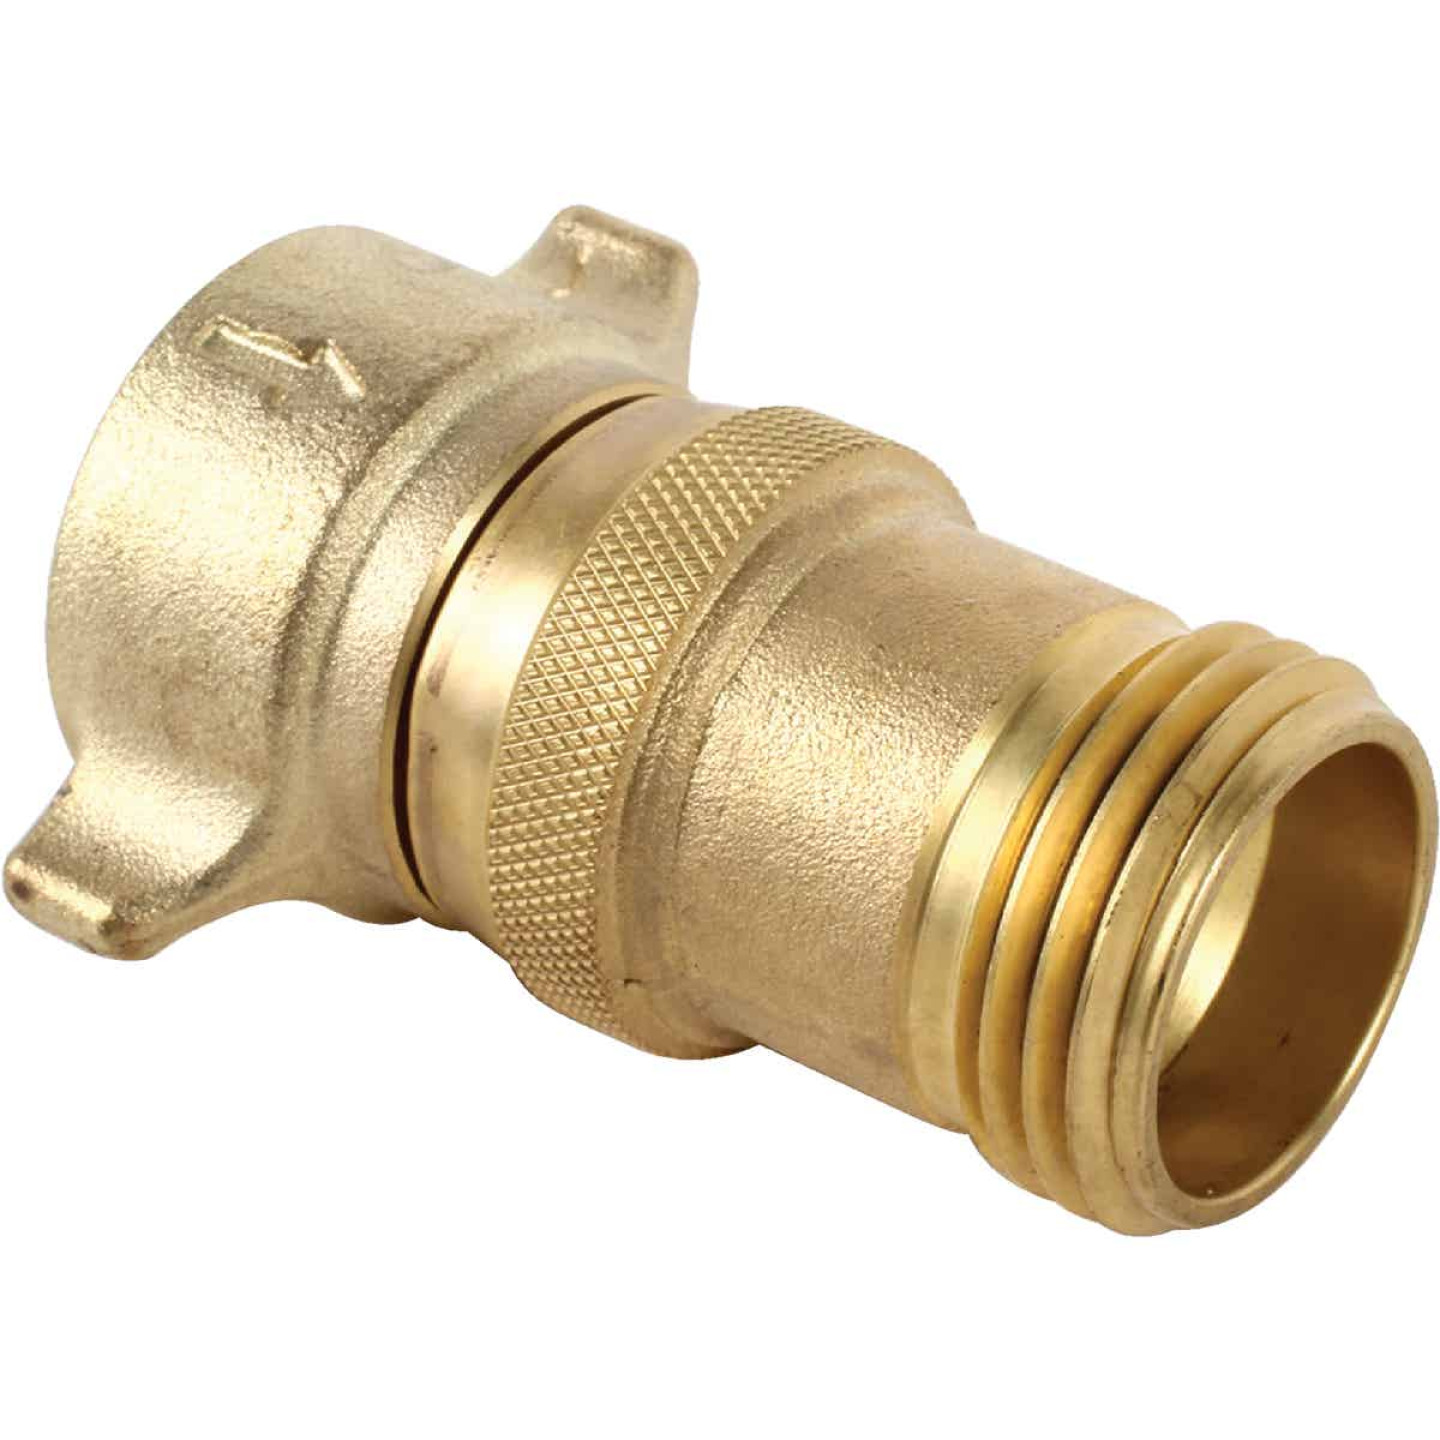 Camco 3/4 In. 40 - 50 psi Brass RV Water Regulator Image 1